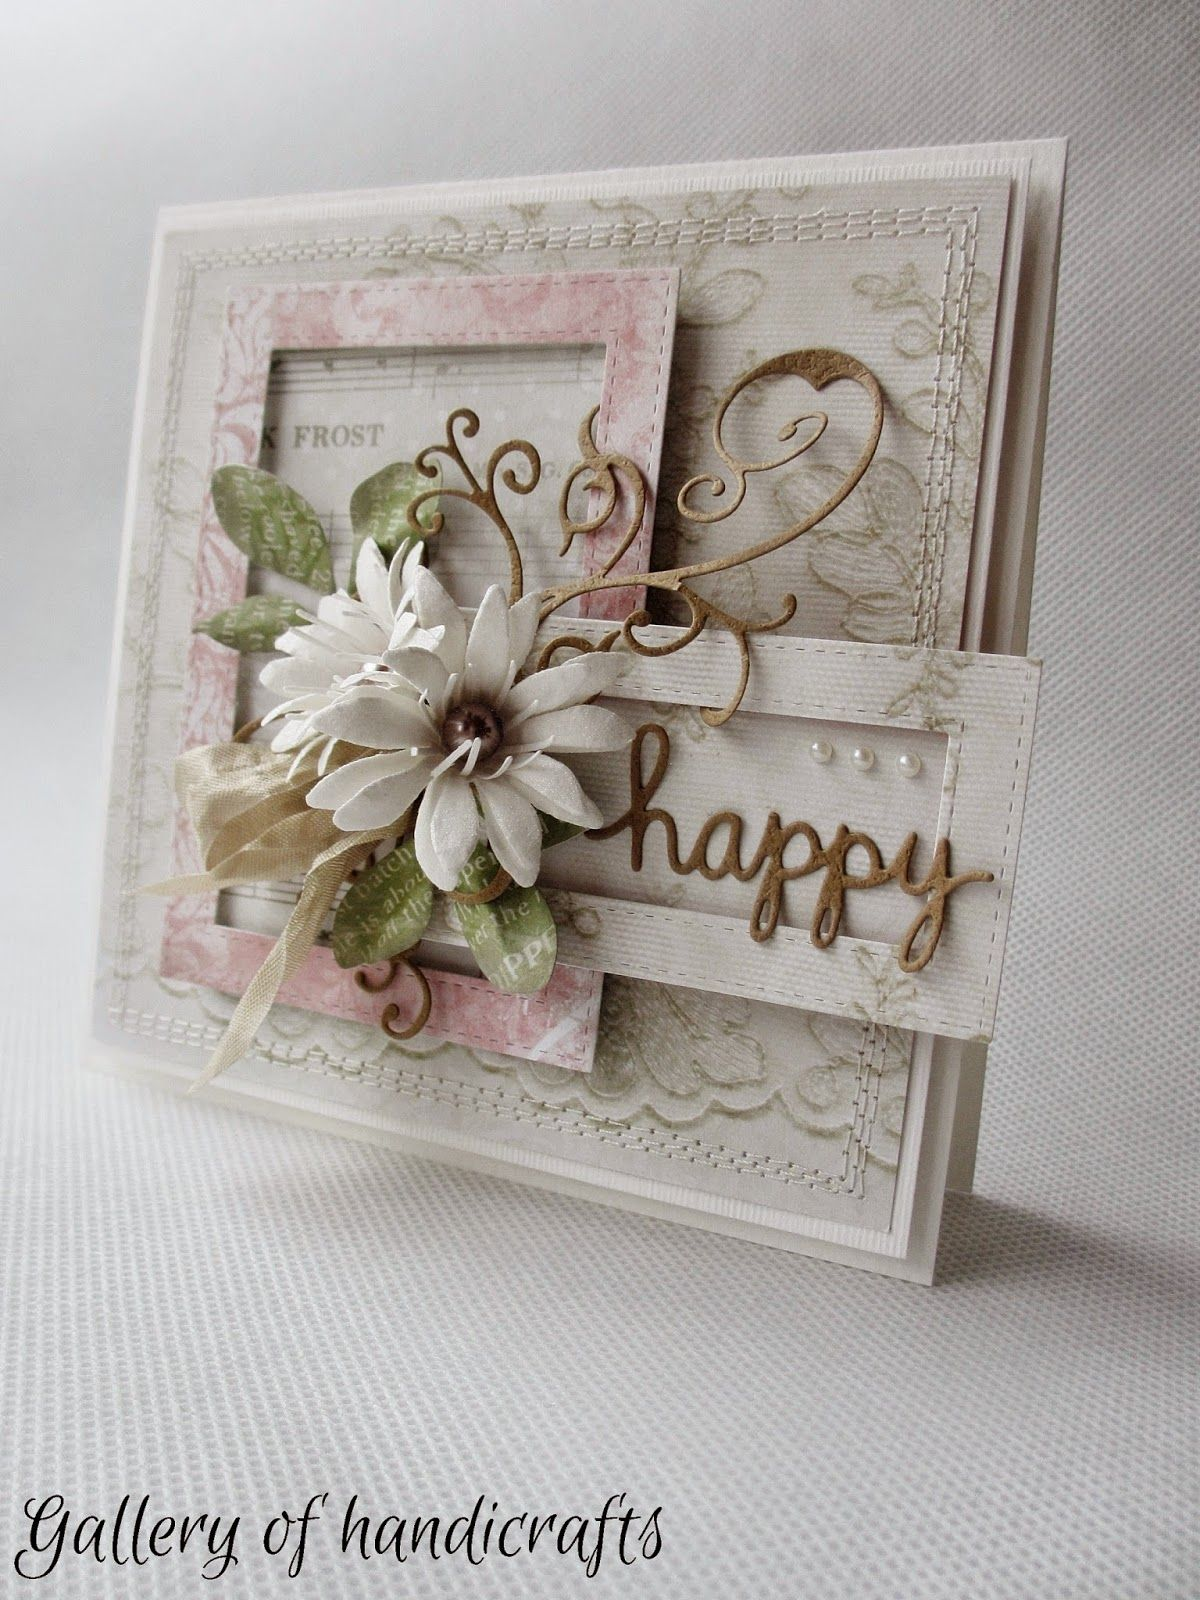 Card Flowers Scripty Words Happy Vintage Shabby Chic Gallery Of